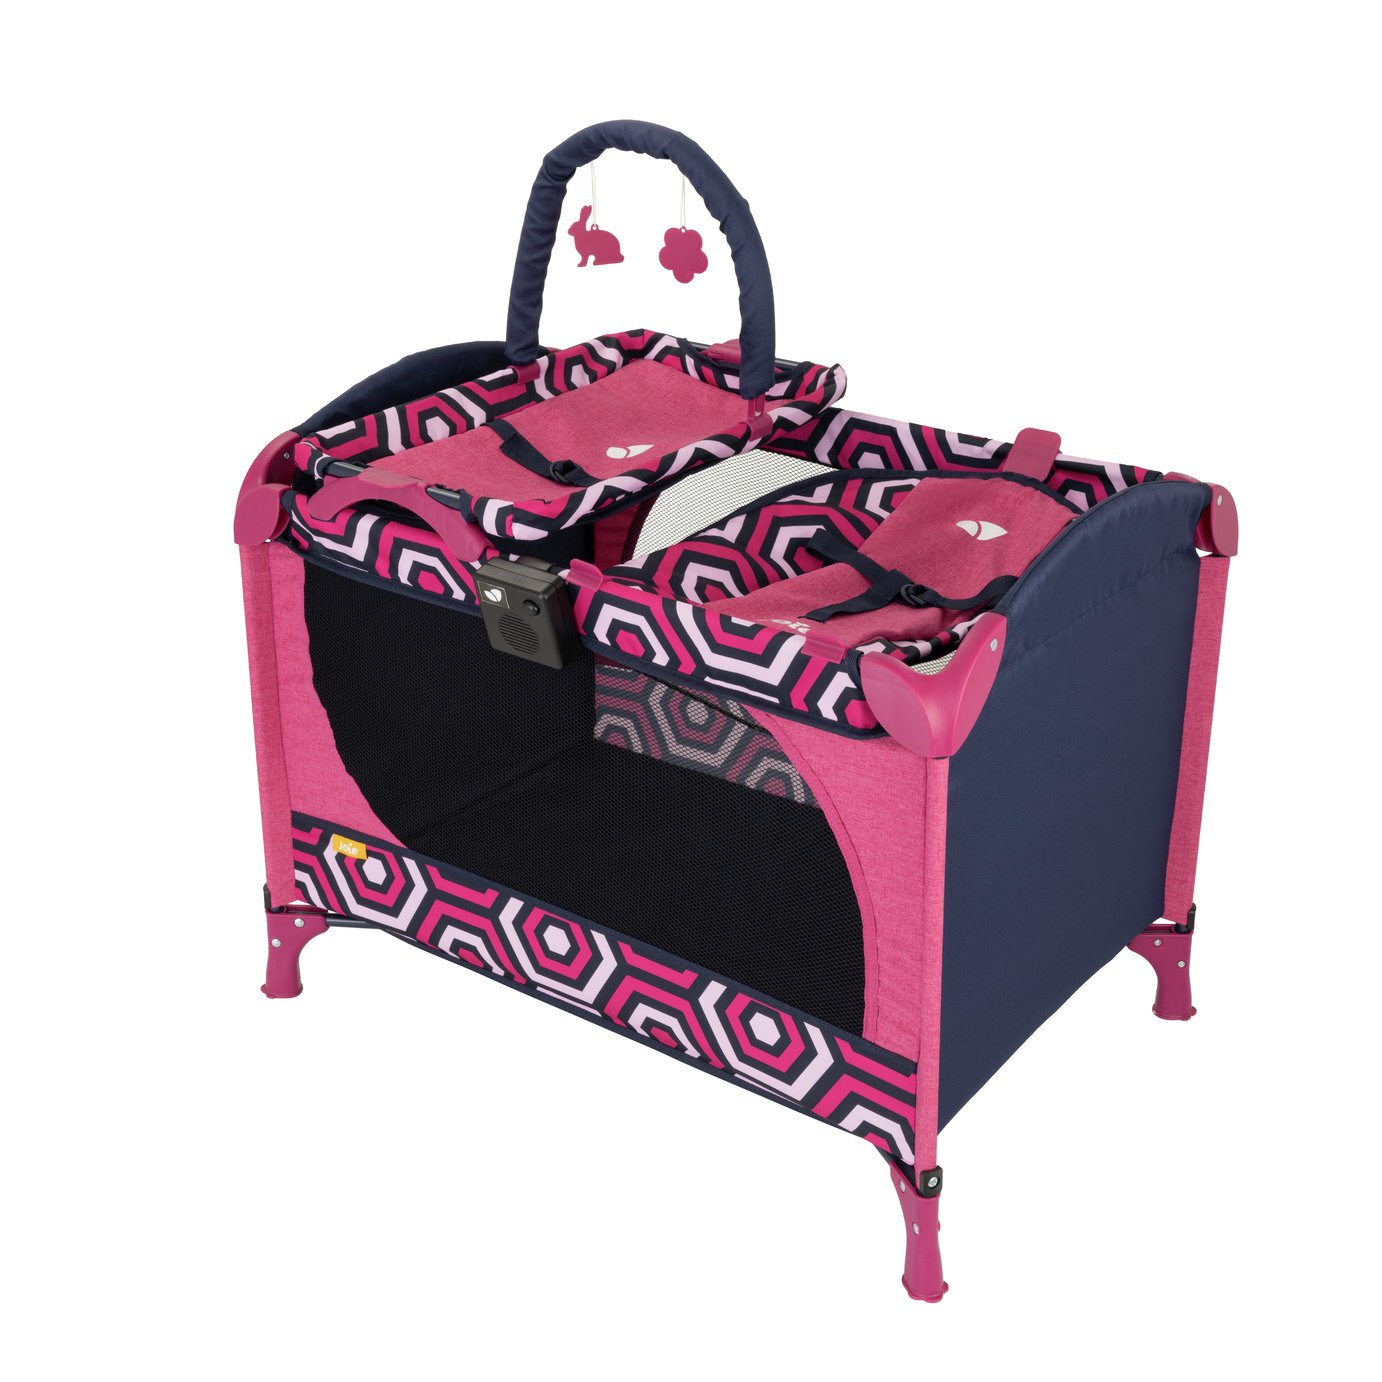 Joie The Excursion Travel Cot